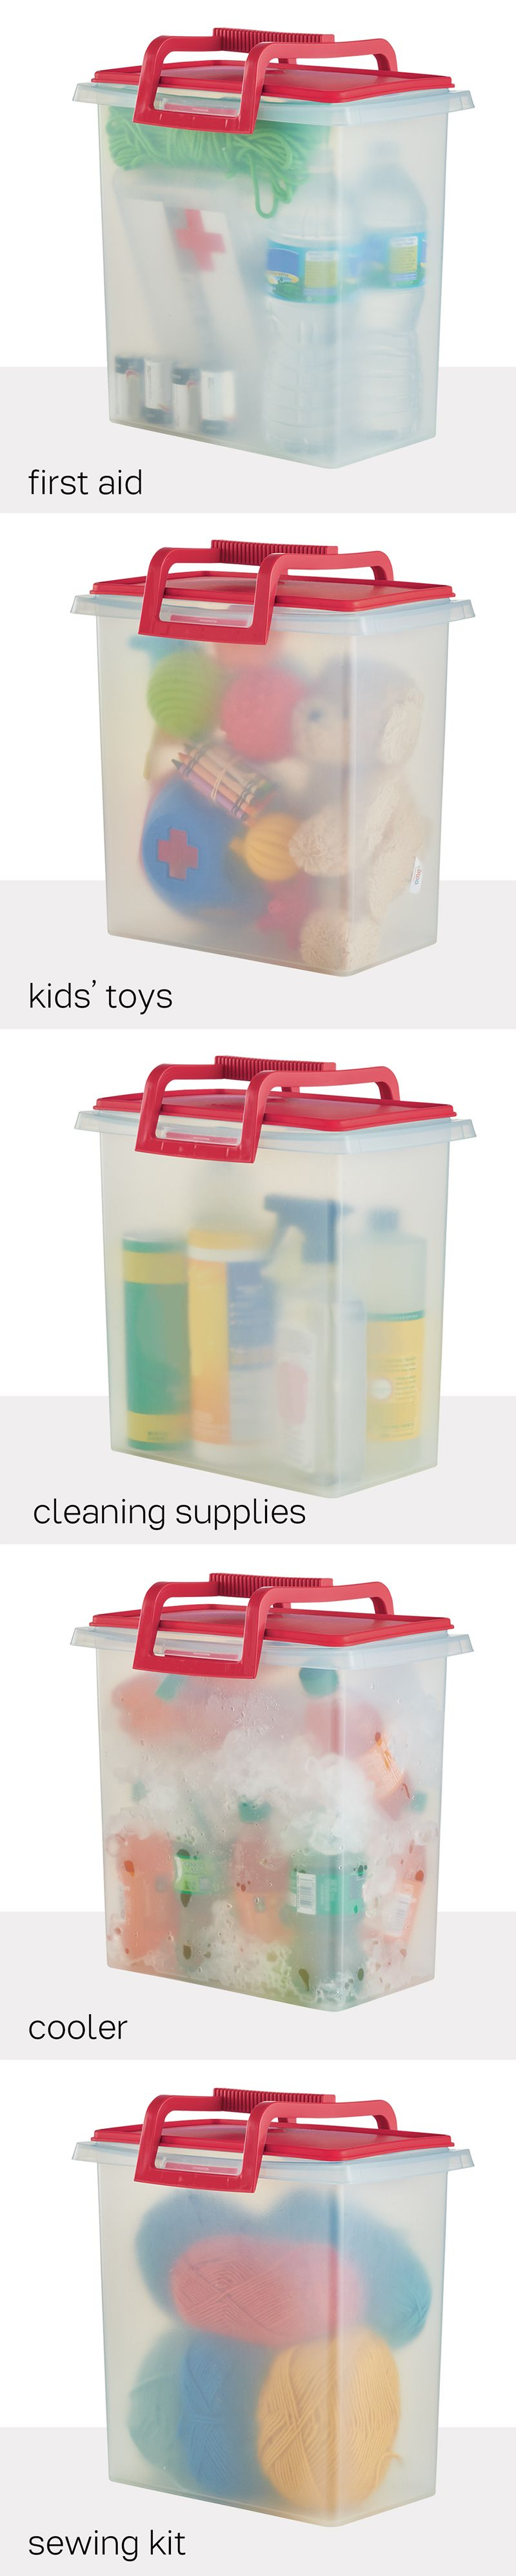 Large Carry All With Handle Tote And Store Toys Cleaning Supplies Pet Food Cold Drinks And Tupperware Consultant Tupperware Recipes Tupperware Organizing